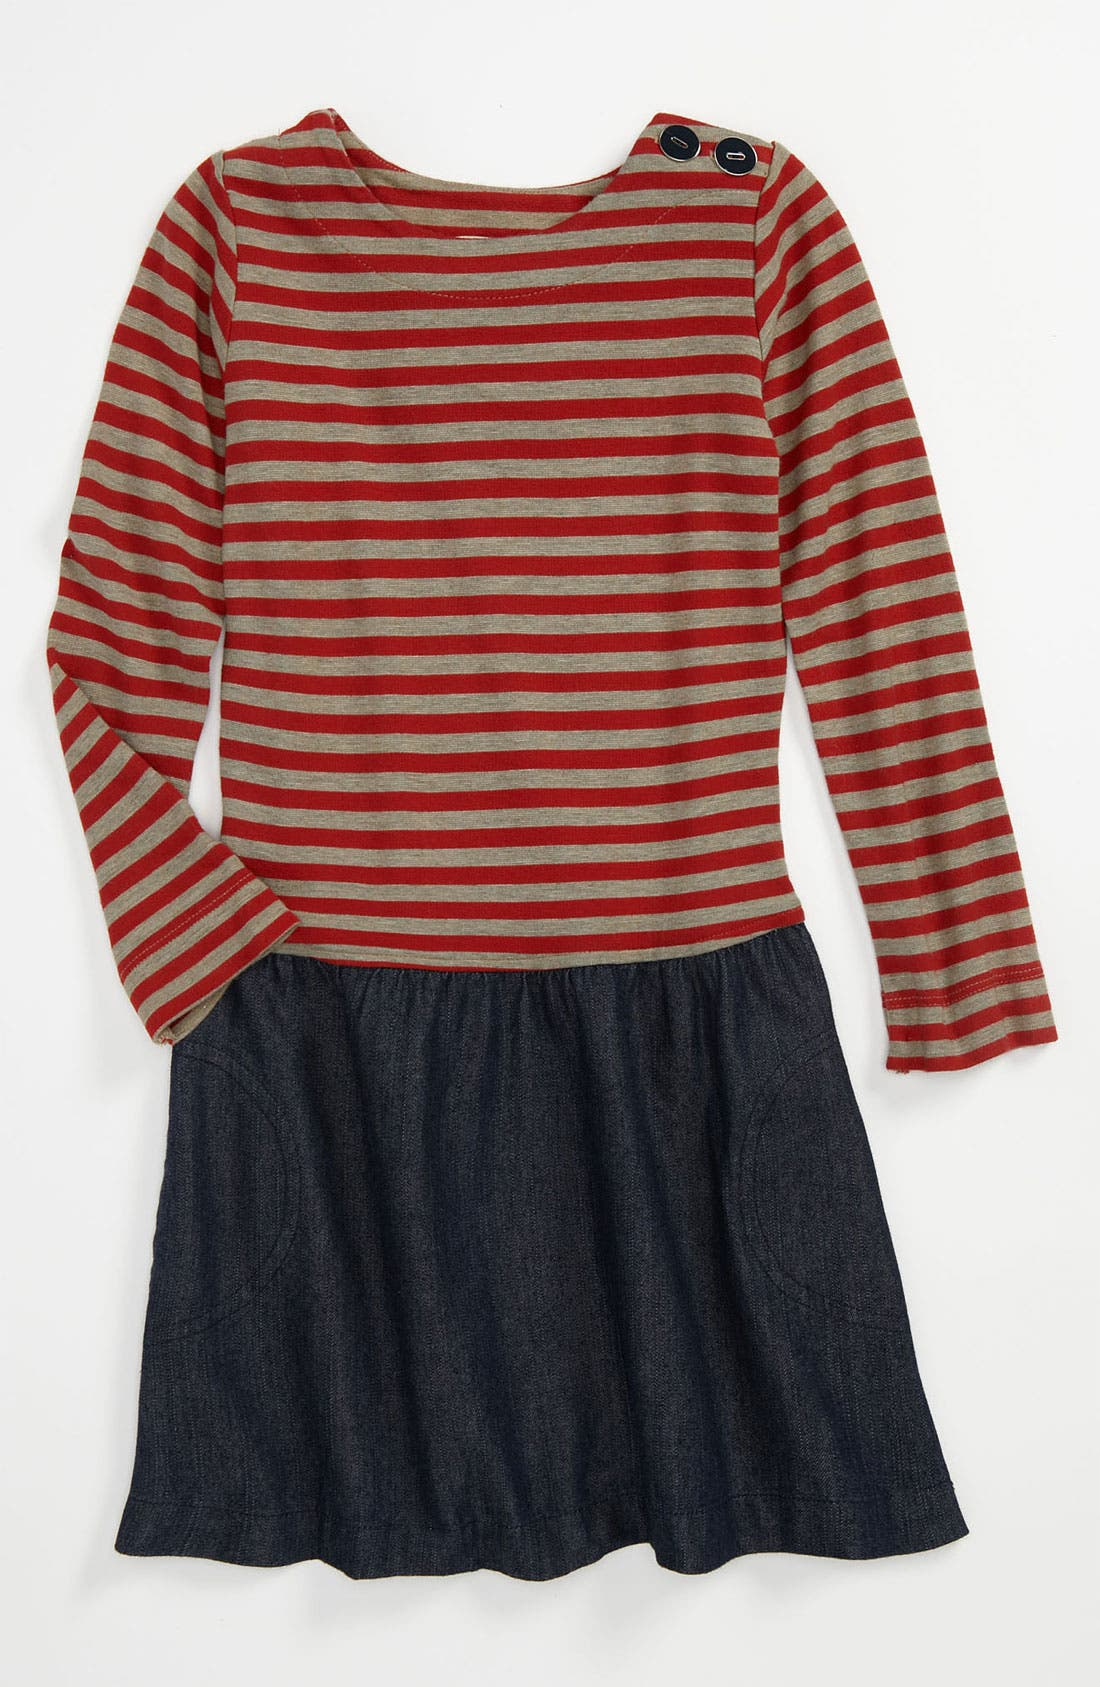 Main Image - Anthem of the Ants 'Museum' Stripe Dress (Little Girls & Big Girls)